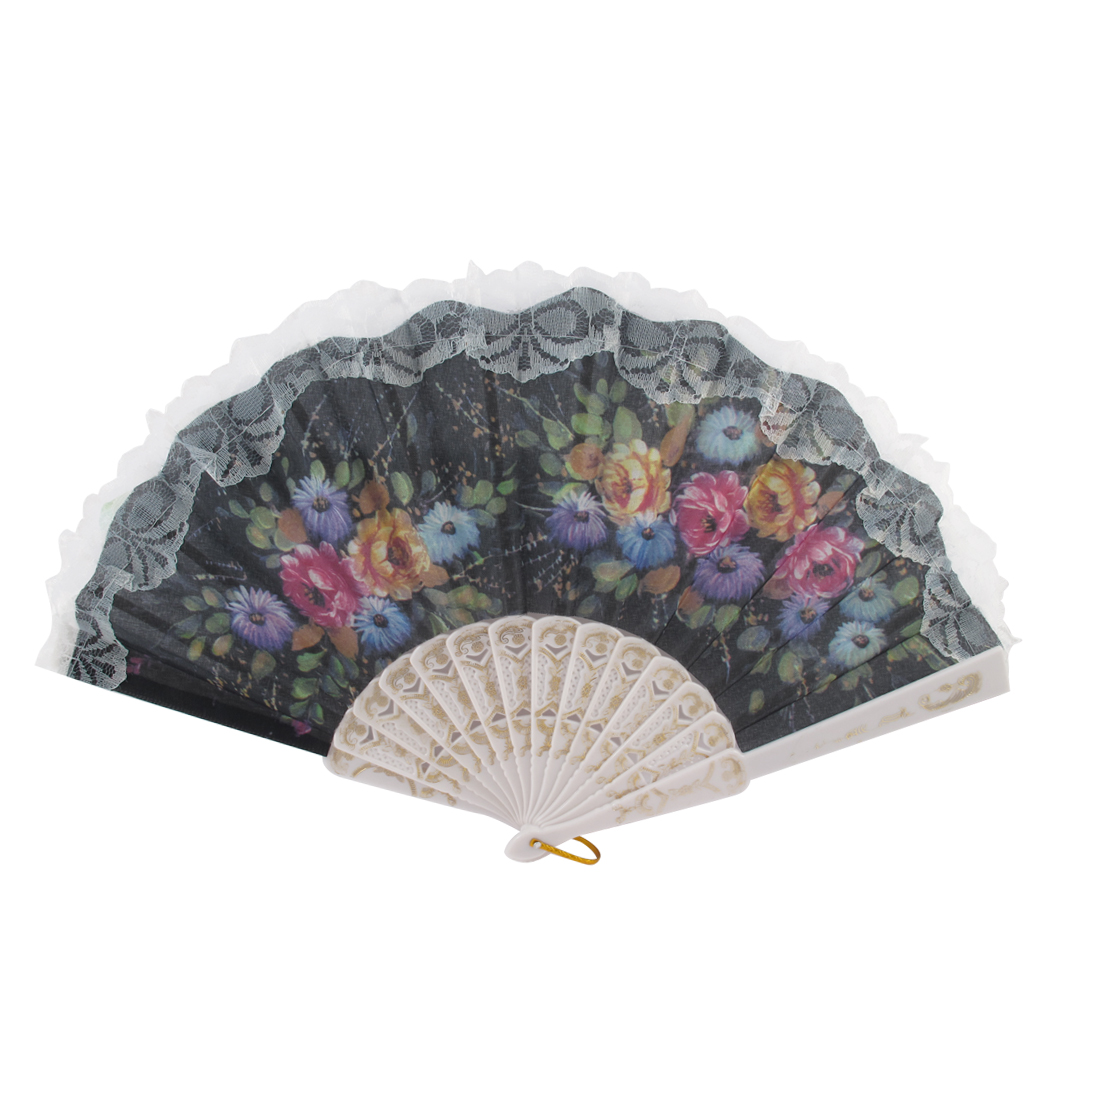 Outdoor Hook Decor Lace Trim Summer Spanish Style Hand Fan Wall Decoration